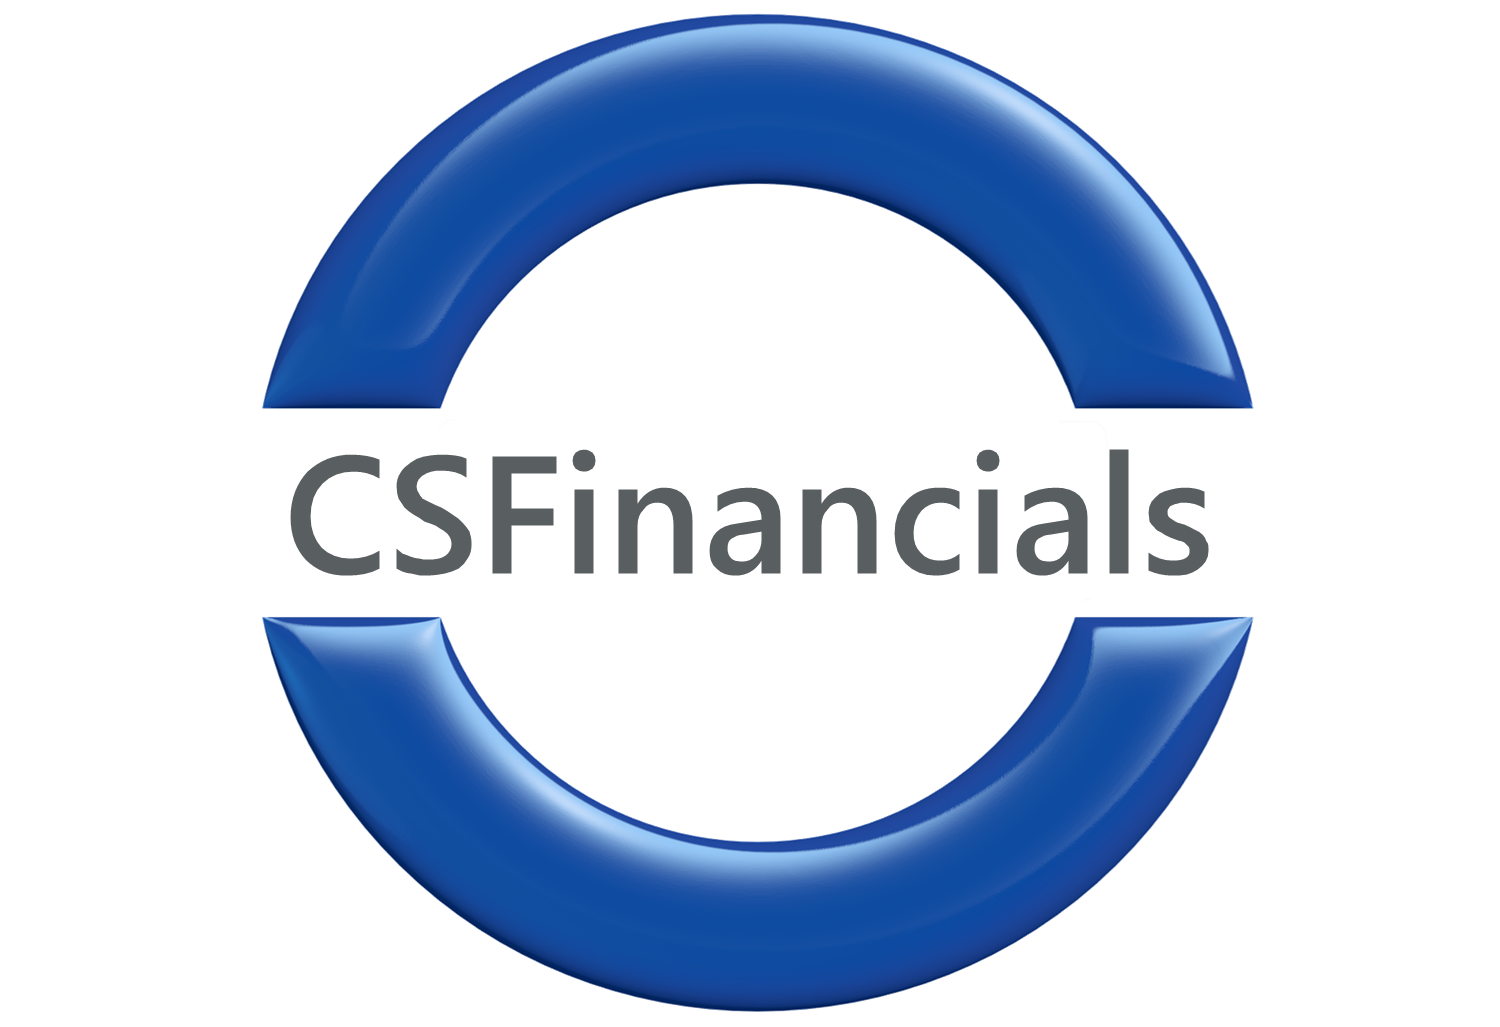 CSFinancials.png